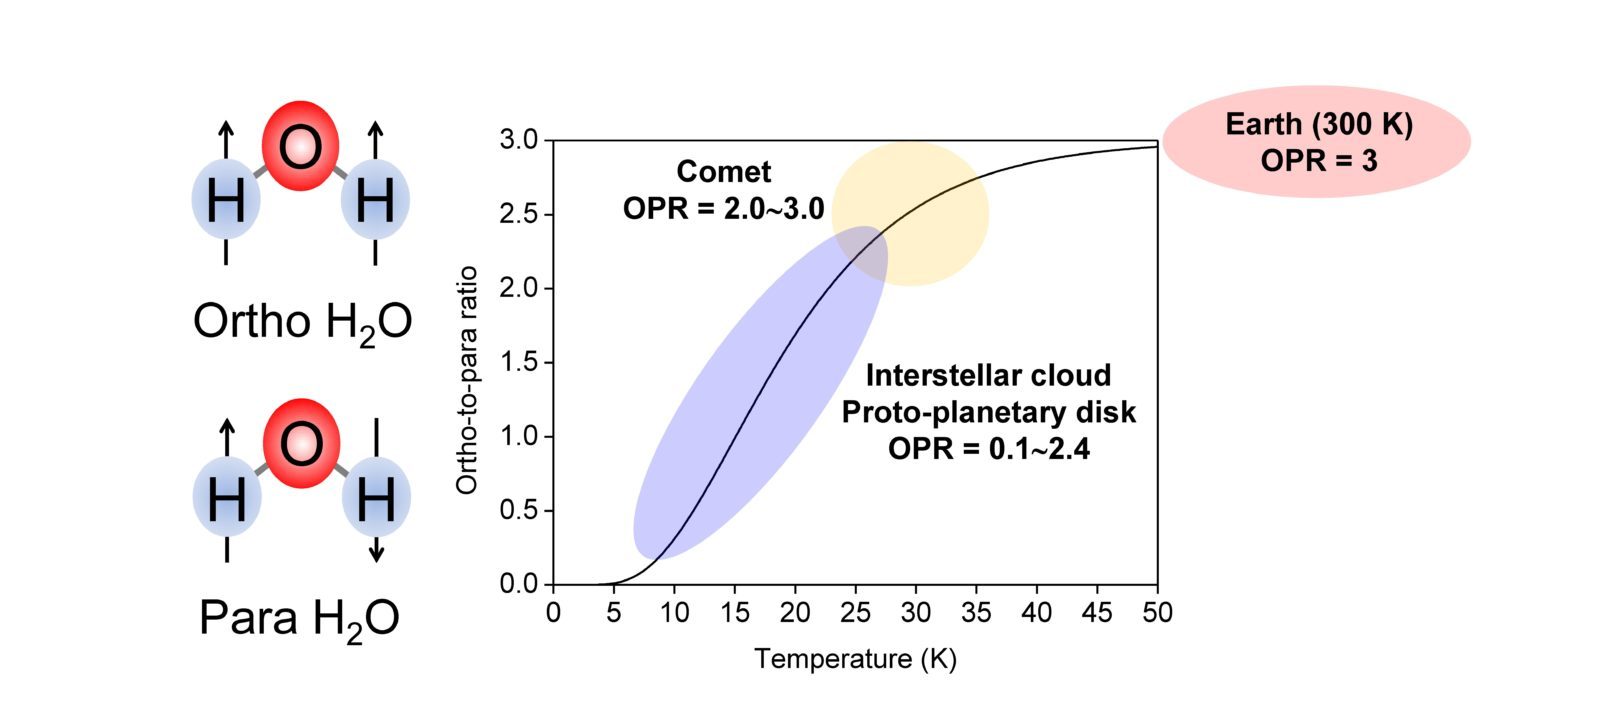 Fig. 1 Ortho-H2O and Para-H2O. At low temperatures below 50 K para-H2O becomes more stable than ortho-H2O, so the OPR changes from that under high temperature conditions (OPR = 3), and the amount of para-H2O increases.